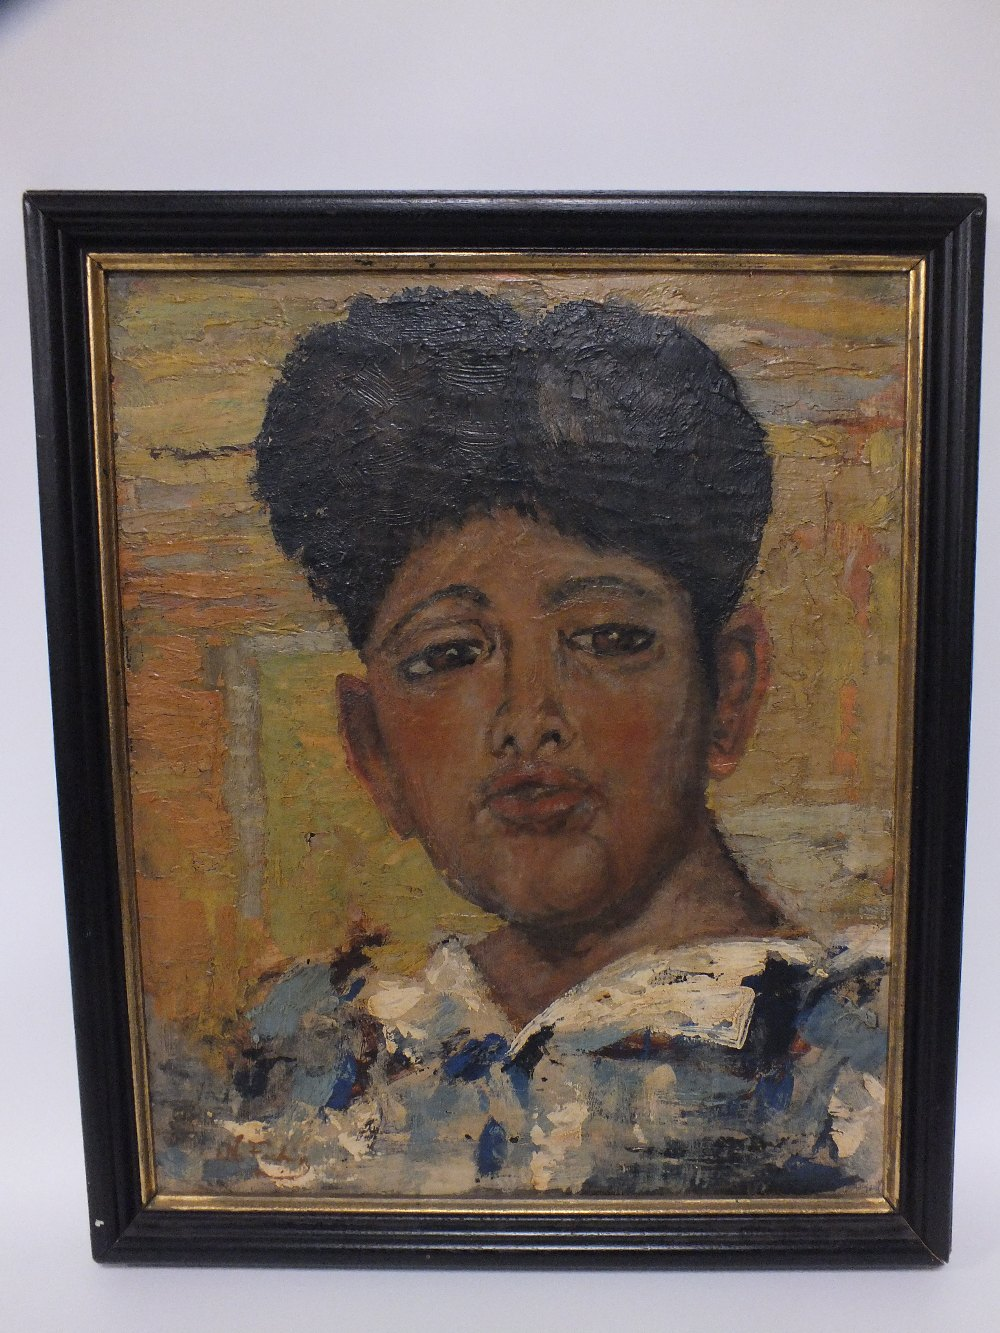 Lot 141 - CIRCLE OF NICOLAI IVANOVICH FECHIN (1881-1955). A head and shoulder portrait study of an Eastern